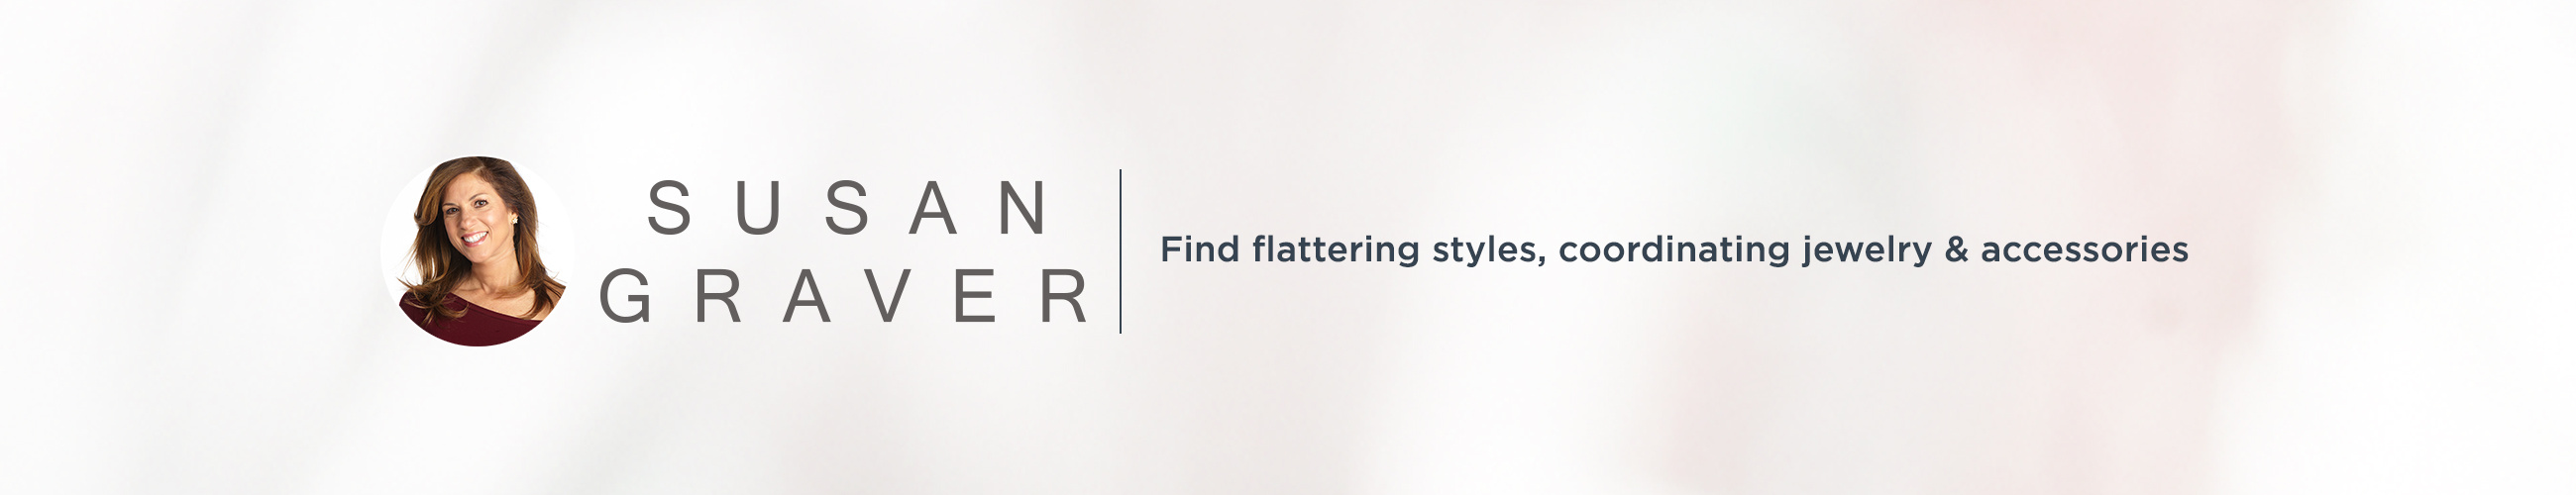 Susan Graver Fashion, Find flattering styles, coordinating jewelry & accessories